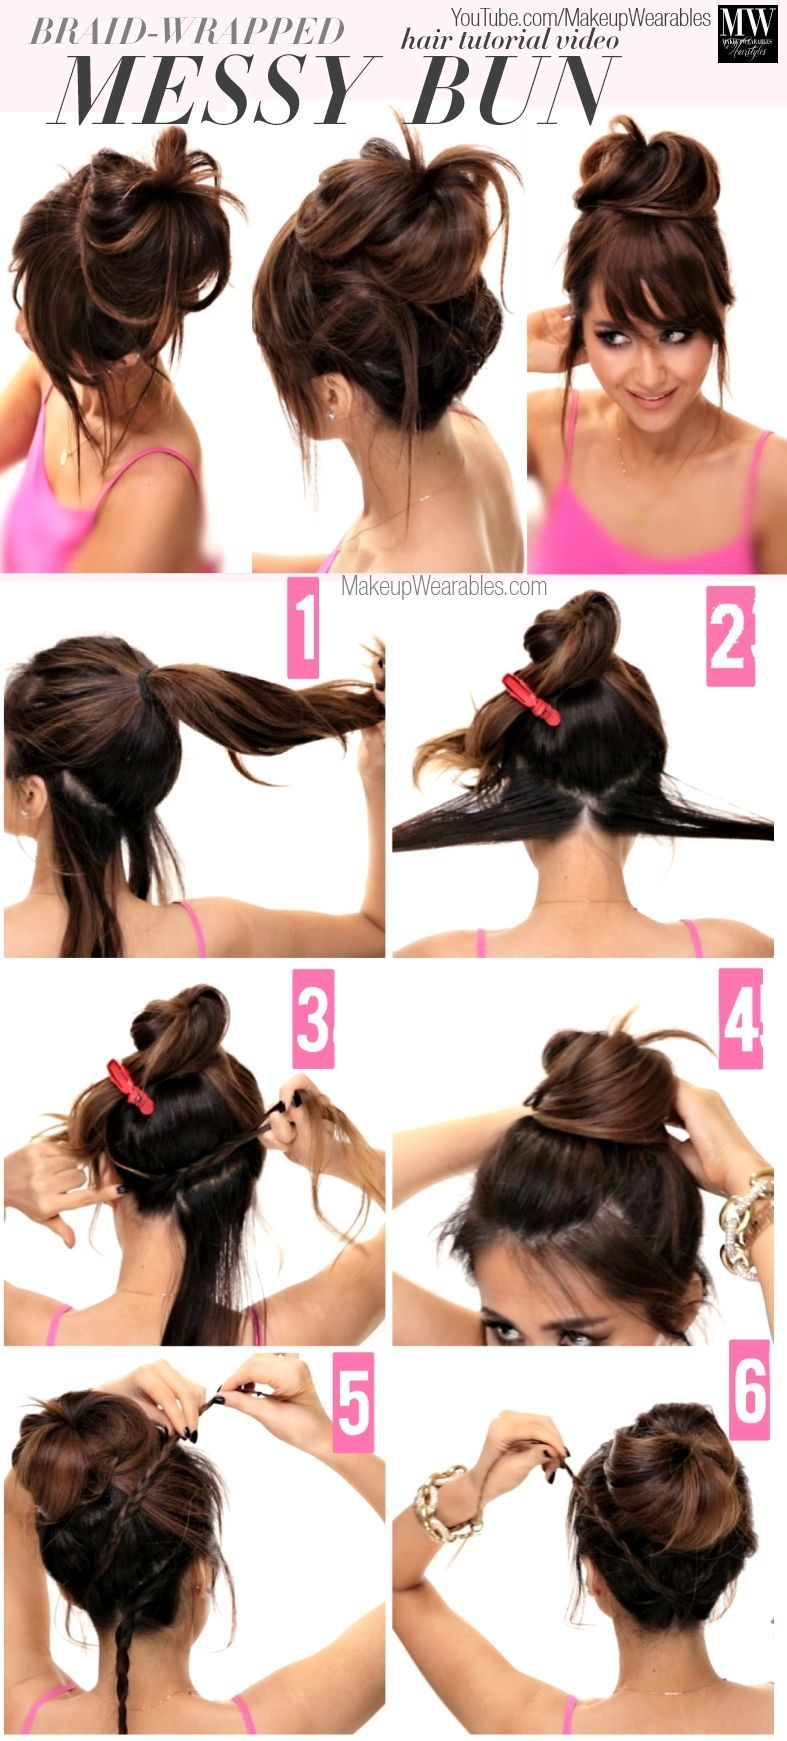 Braid Wrapped Messy Bun Hair Beauty Long Hair Updo Bun Diy Hair Hair Tutorial Hairstyles Tutorials H Hair Styles Easy Hairstyles For Long Hair Long Hair Styles